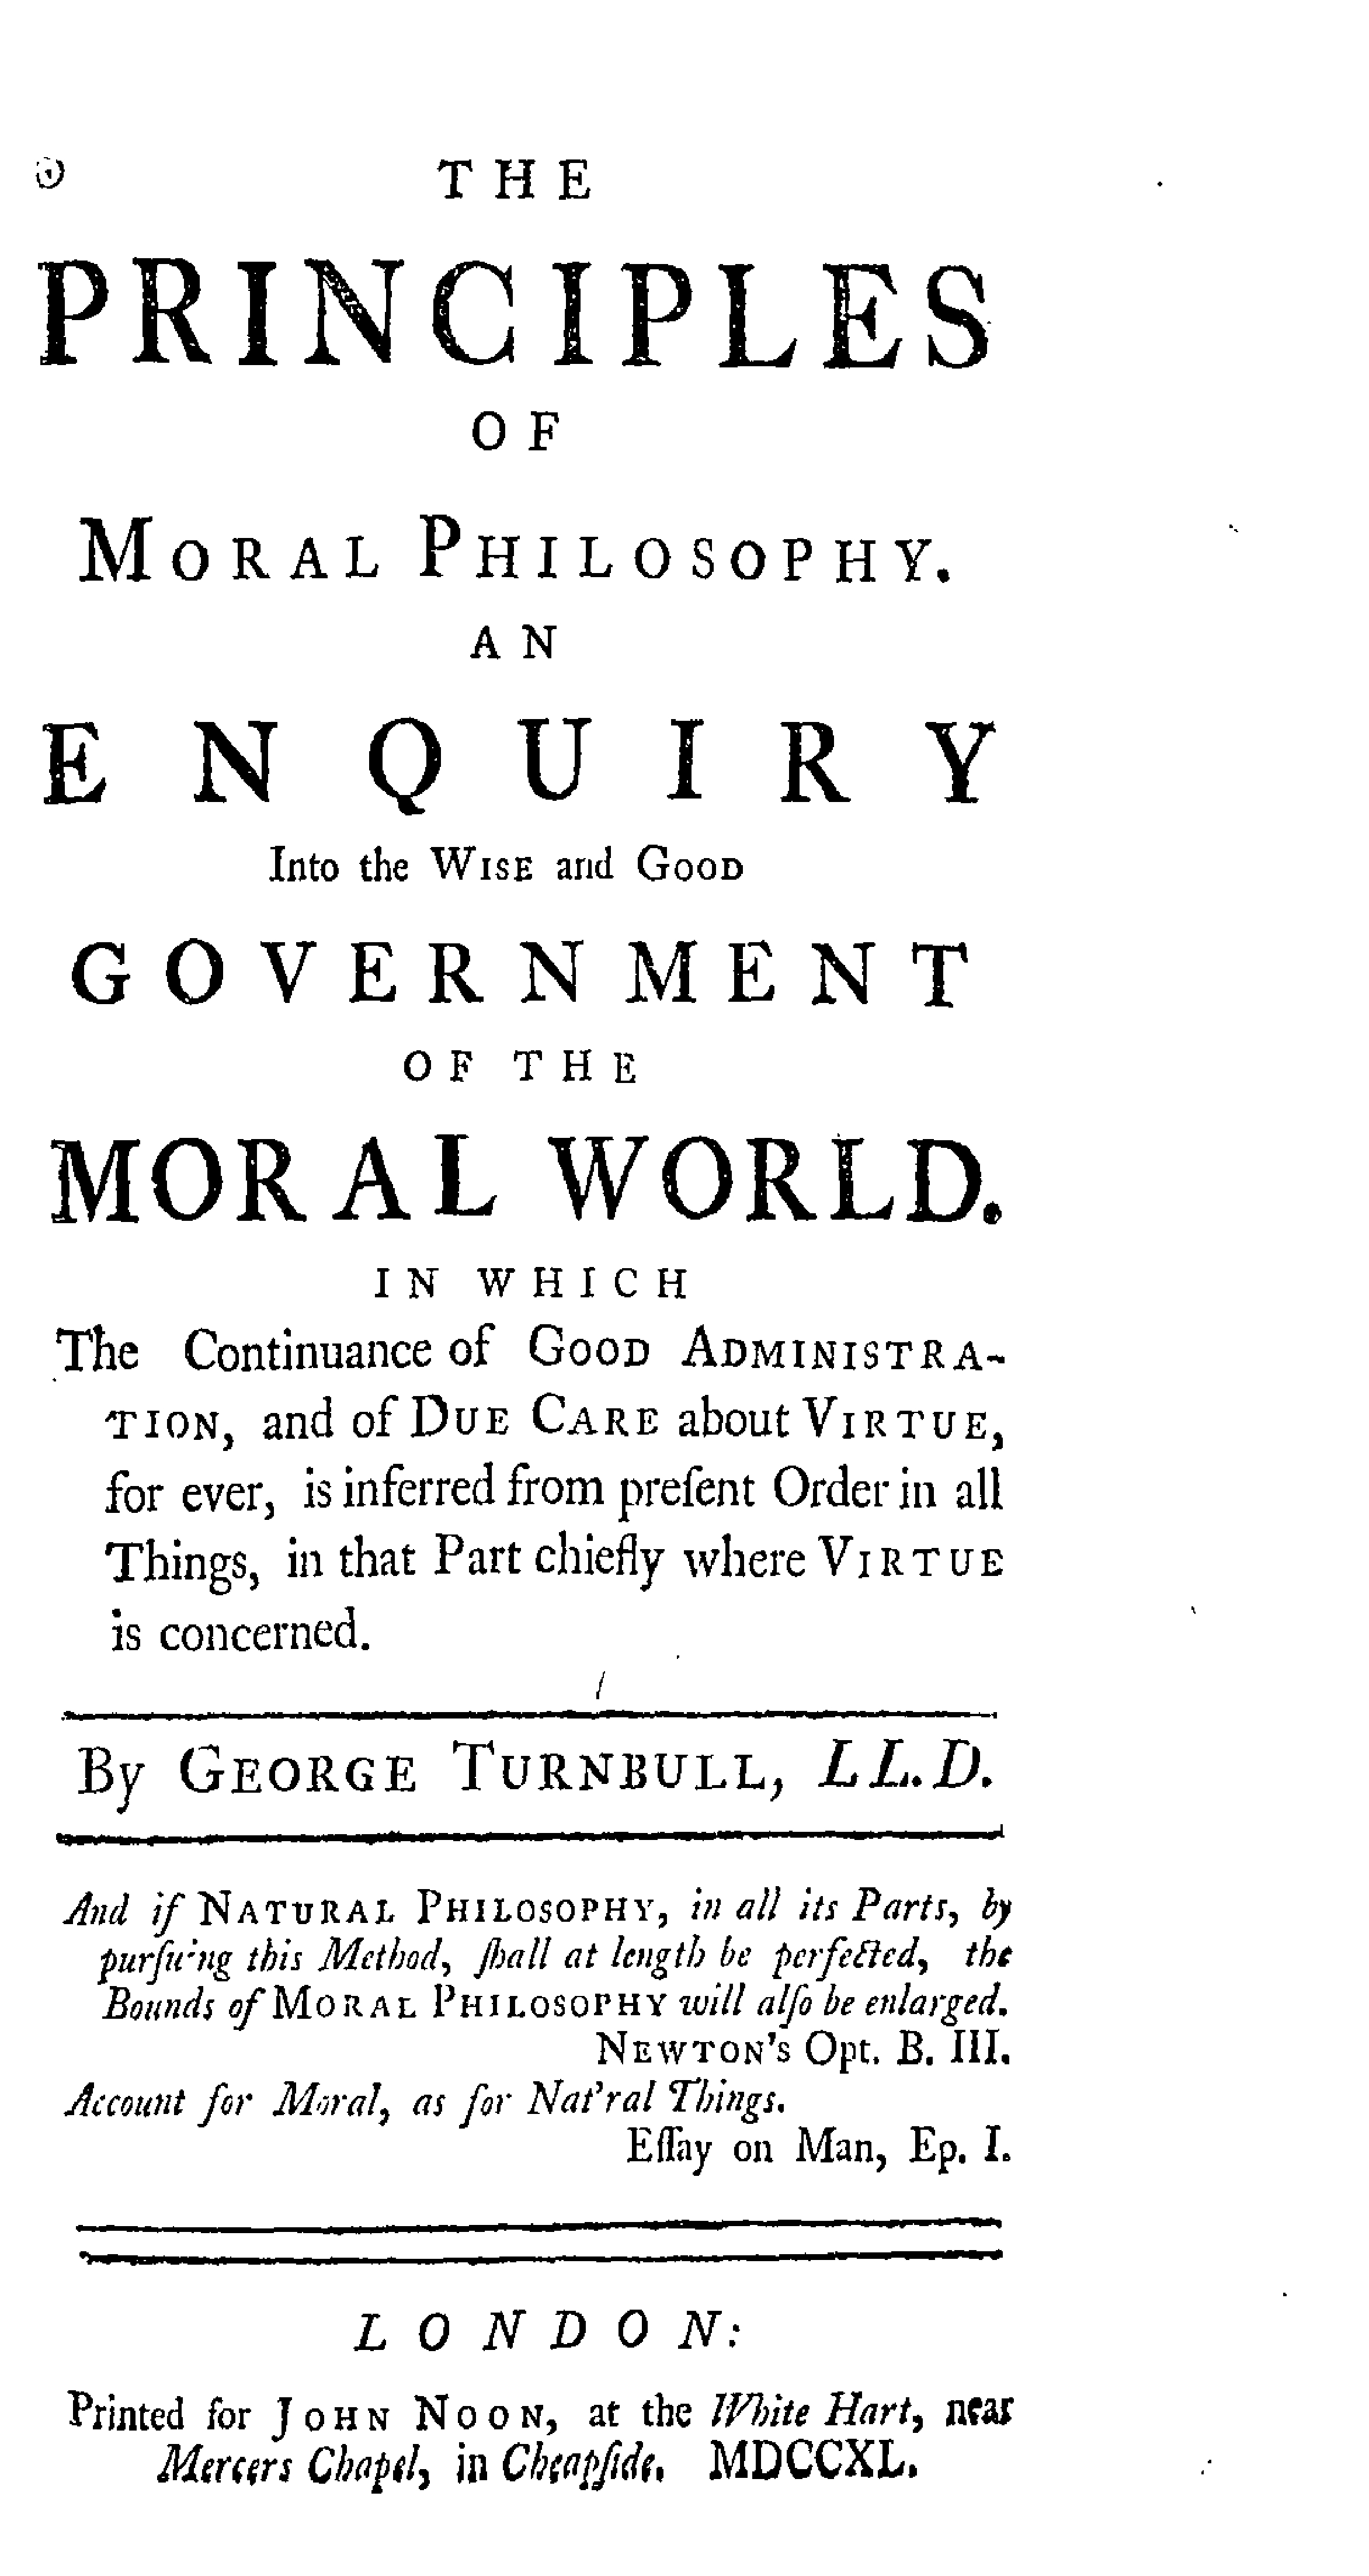 Turnbull's Principles of Moral Philosophy(1740)